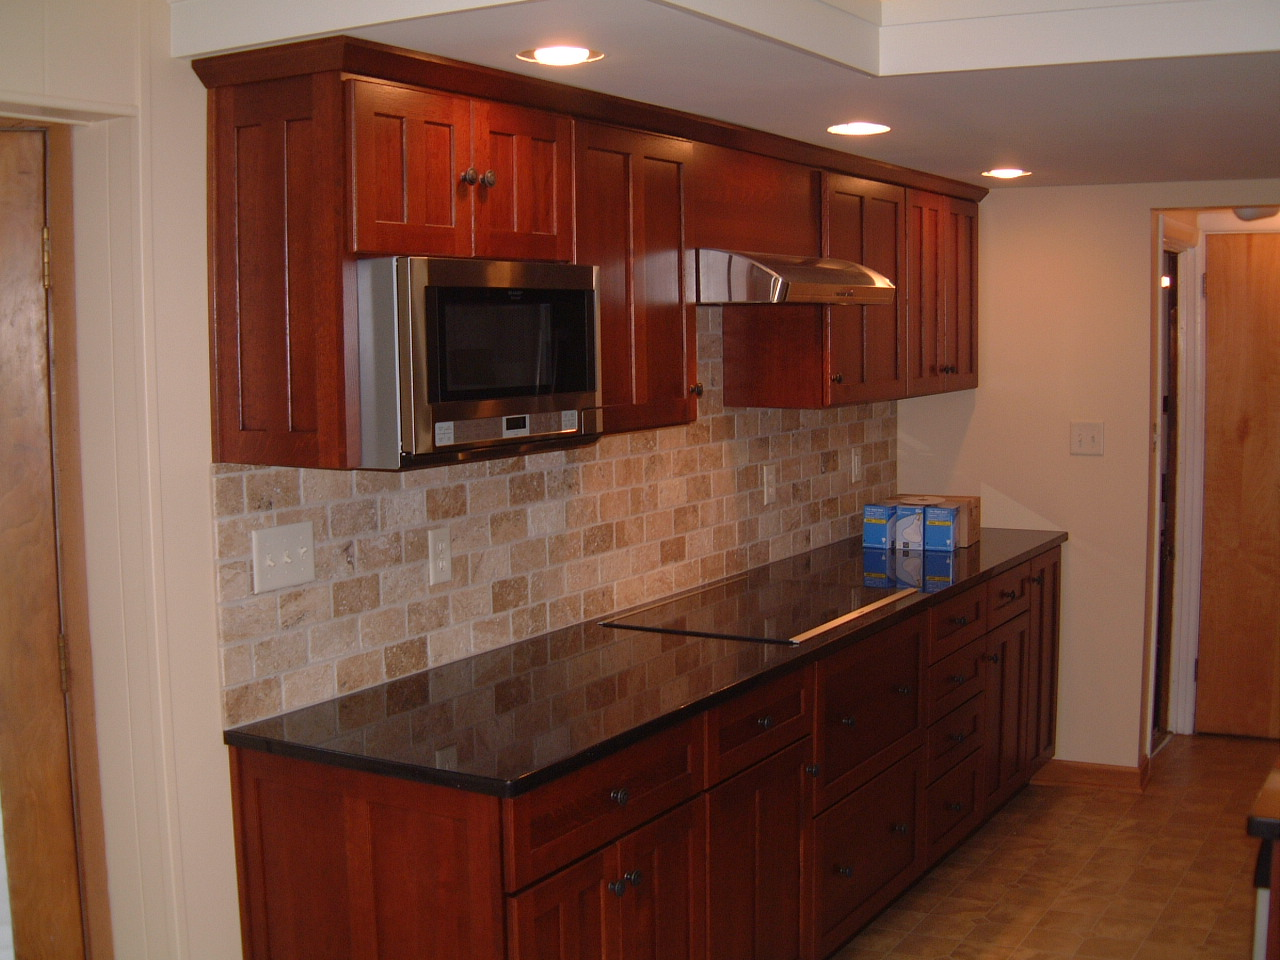 Springfield Kitchen - Project Complete - Remodeling Designs, Inc. on black galaxy kitchen ideas, black galaxy tile, black granite backsplash ideas, black galaxy kitchen countertops,